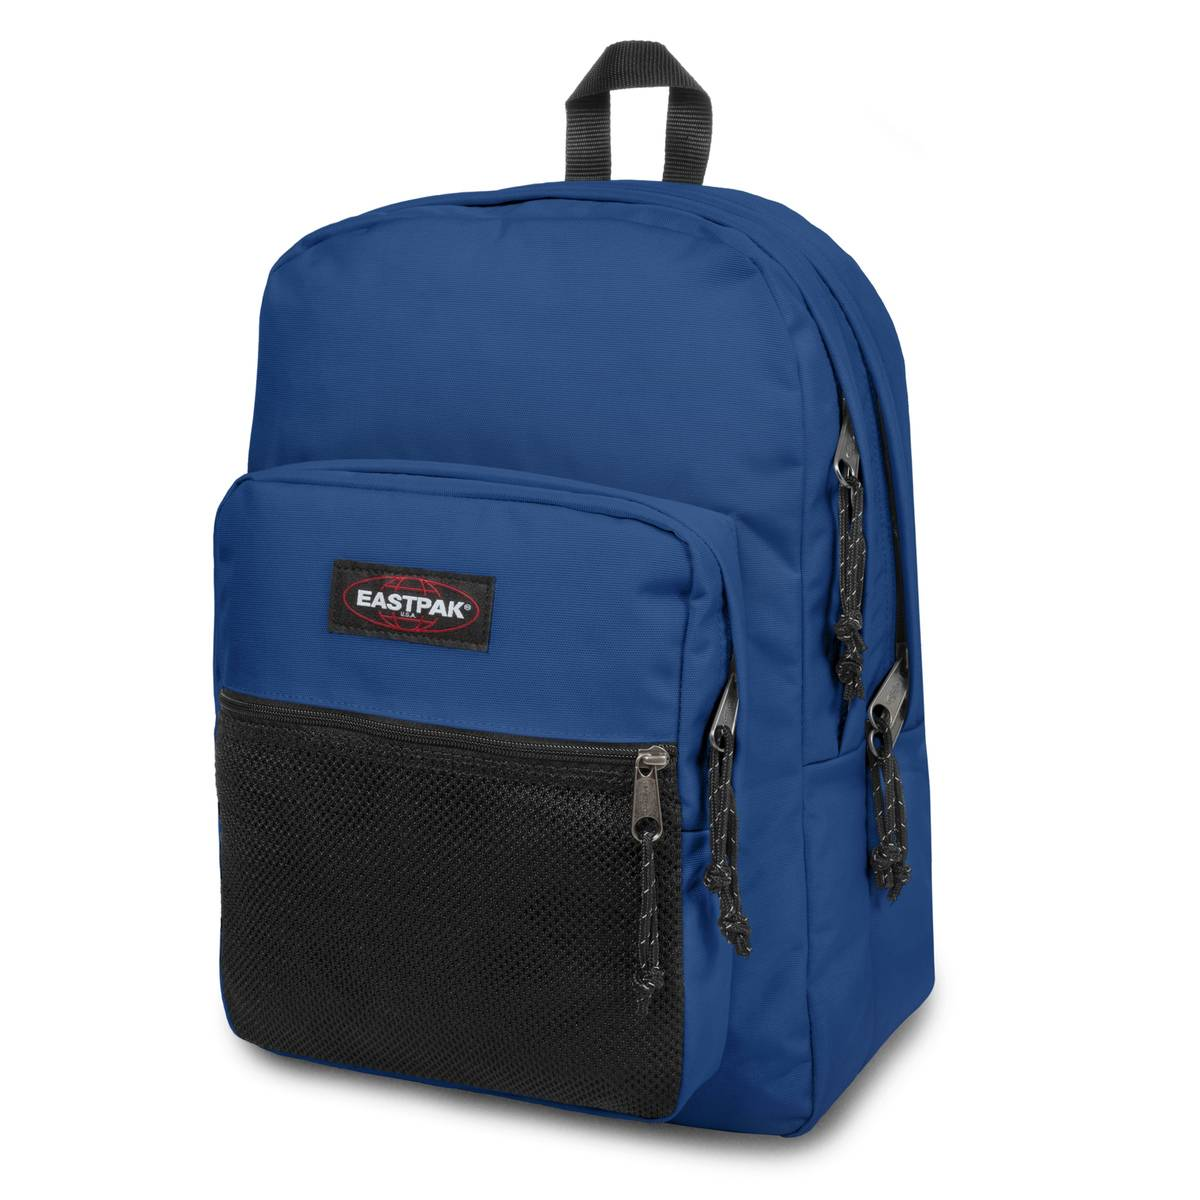 Eastpak Zaino Pinnacle blu medio